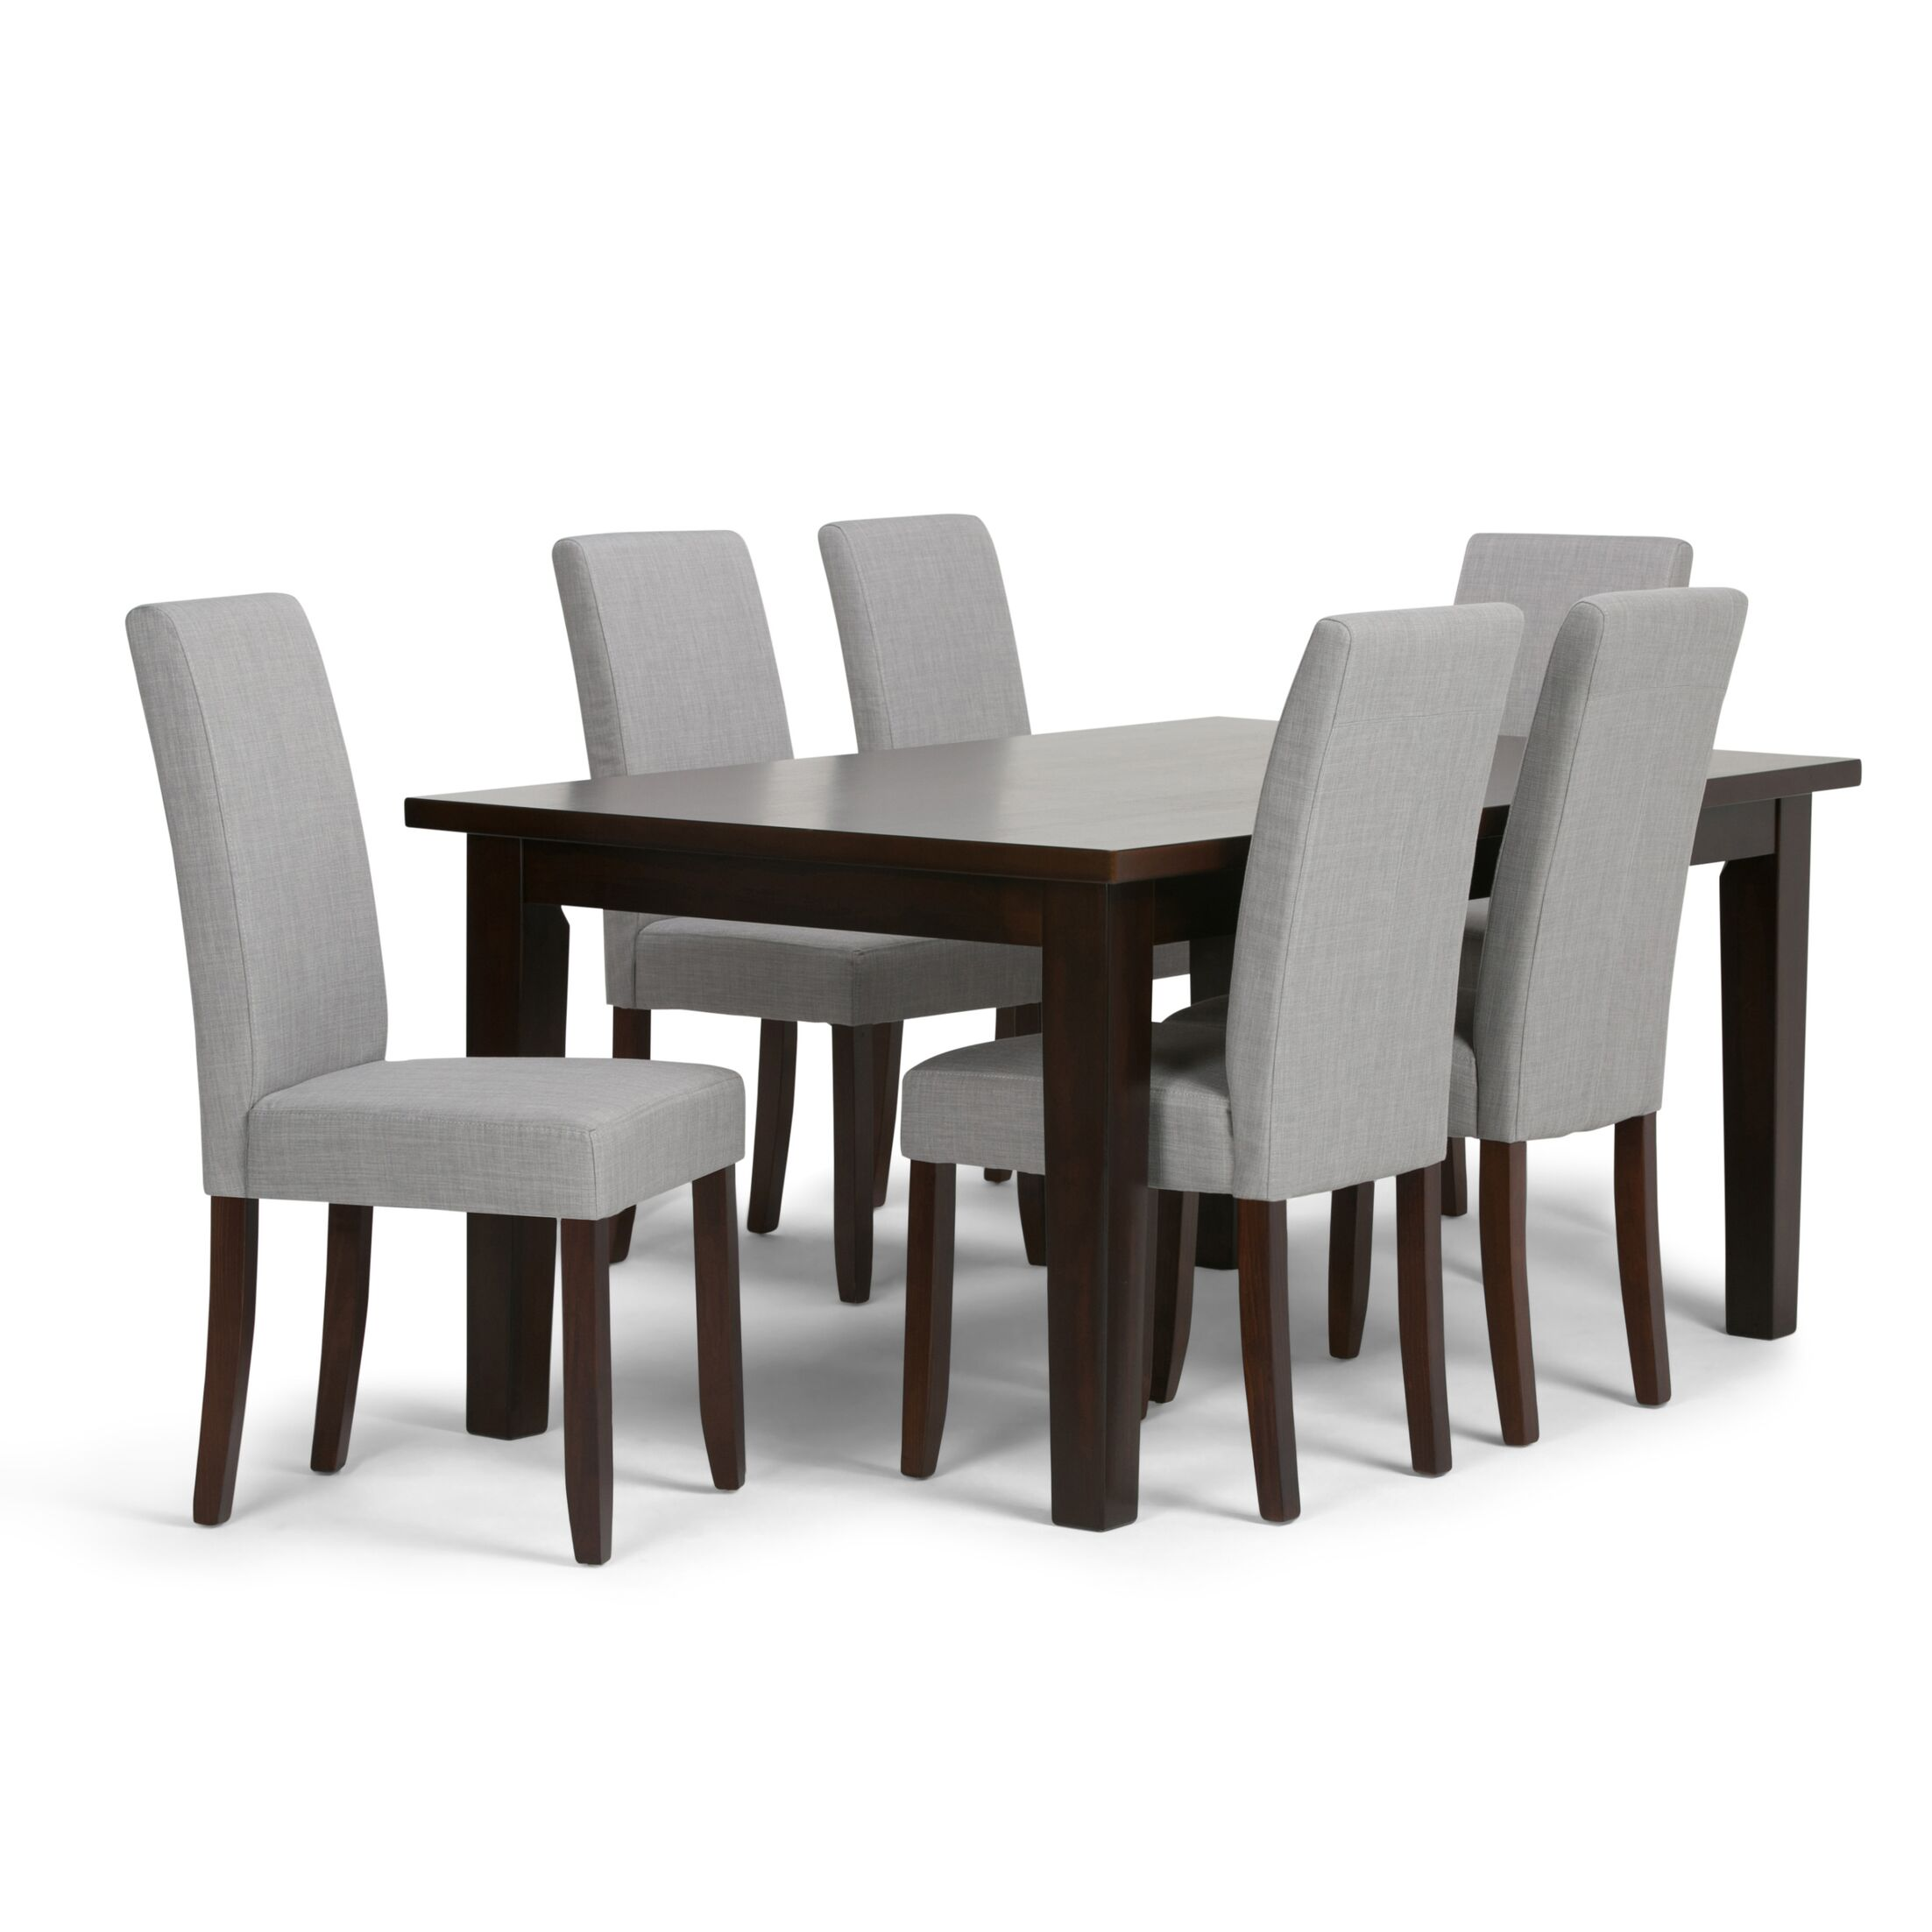 Acadian 7 Piece Dining Set Chair Finish: Dove Gray